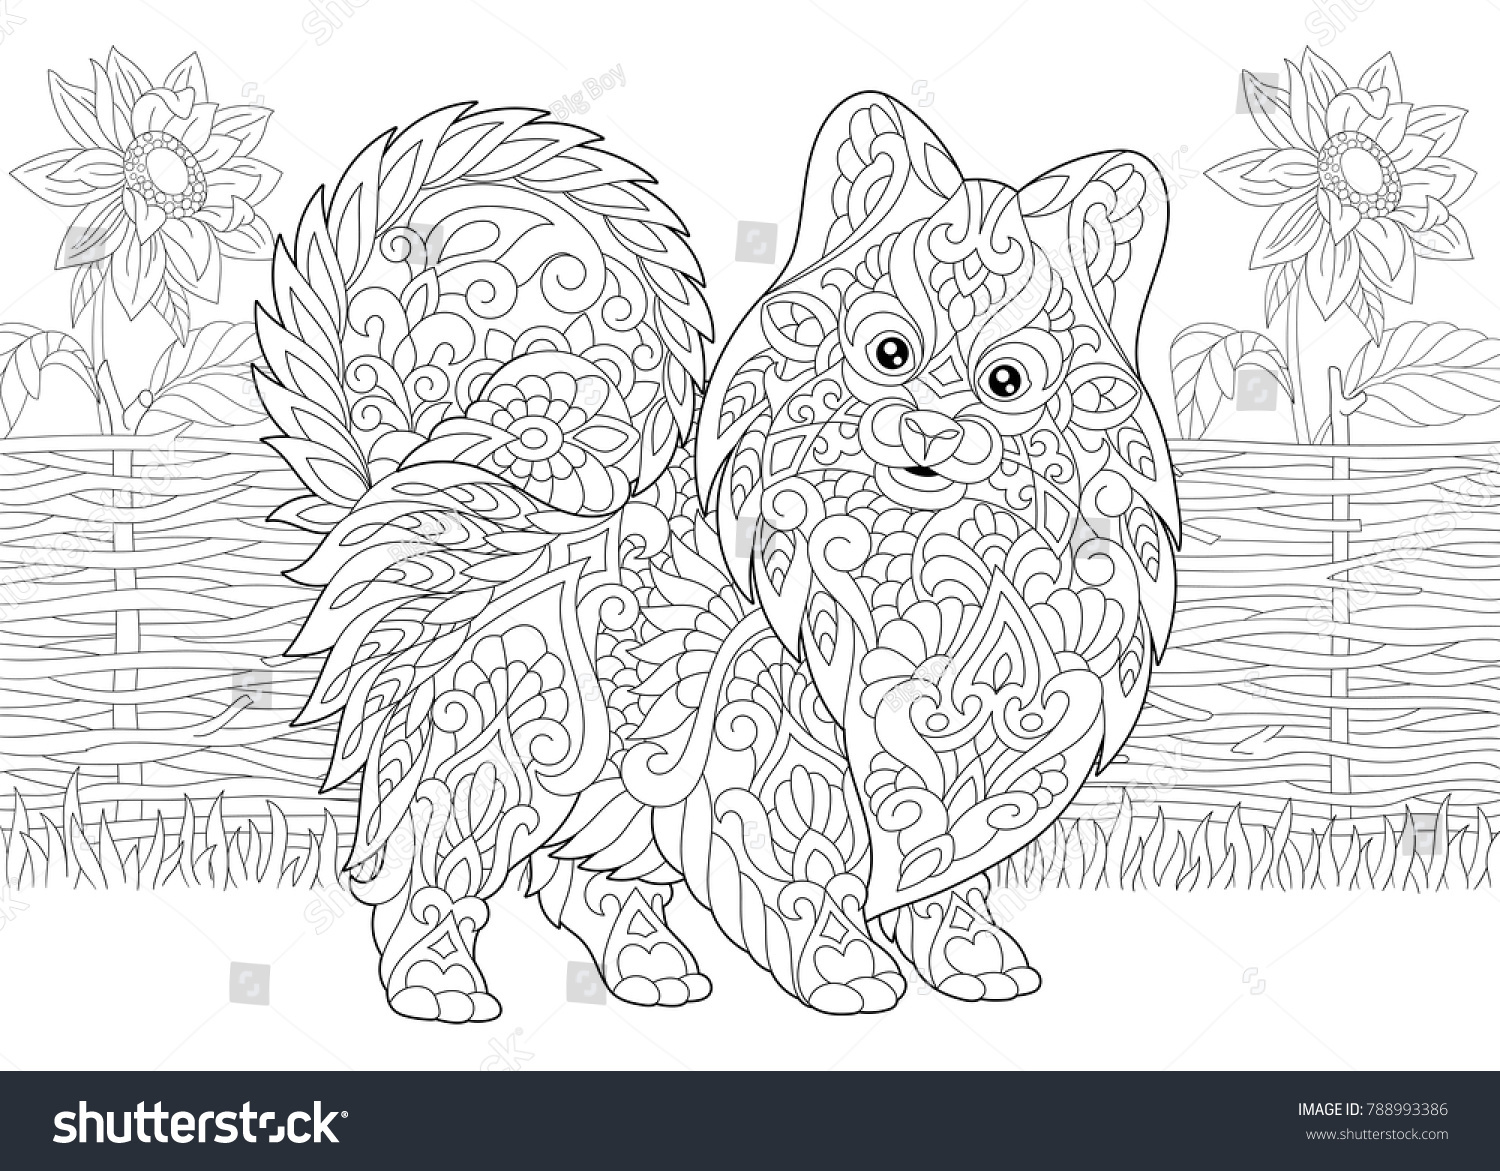 Coloring Page Adult Coloring Book Pomeranian Stock Vector (Royalty ...